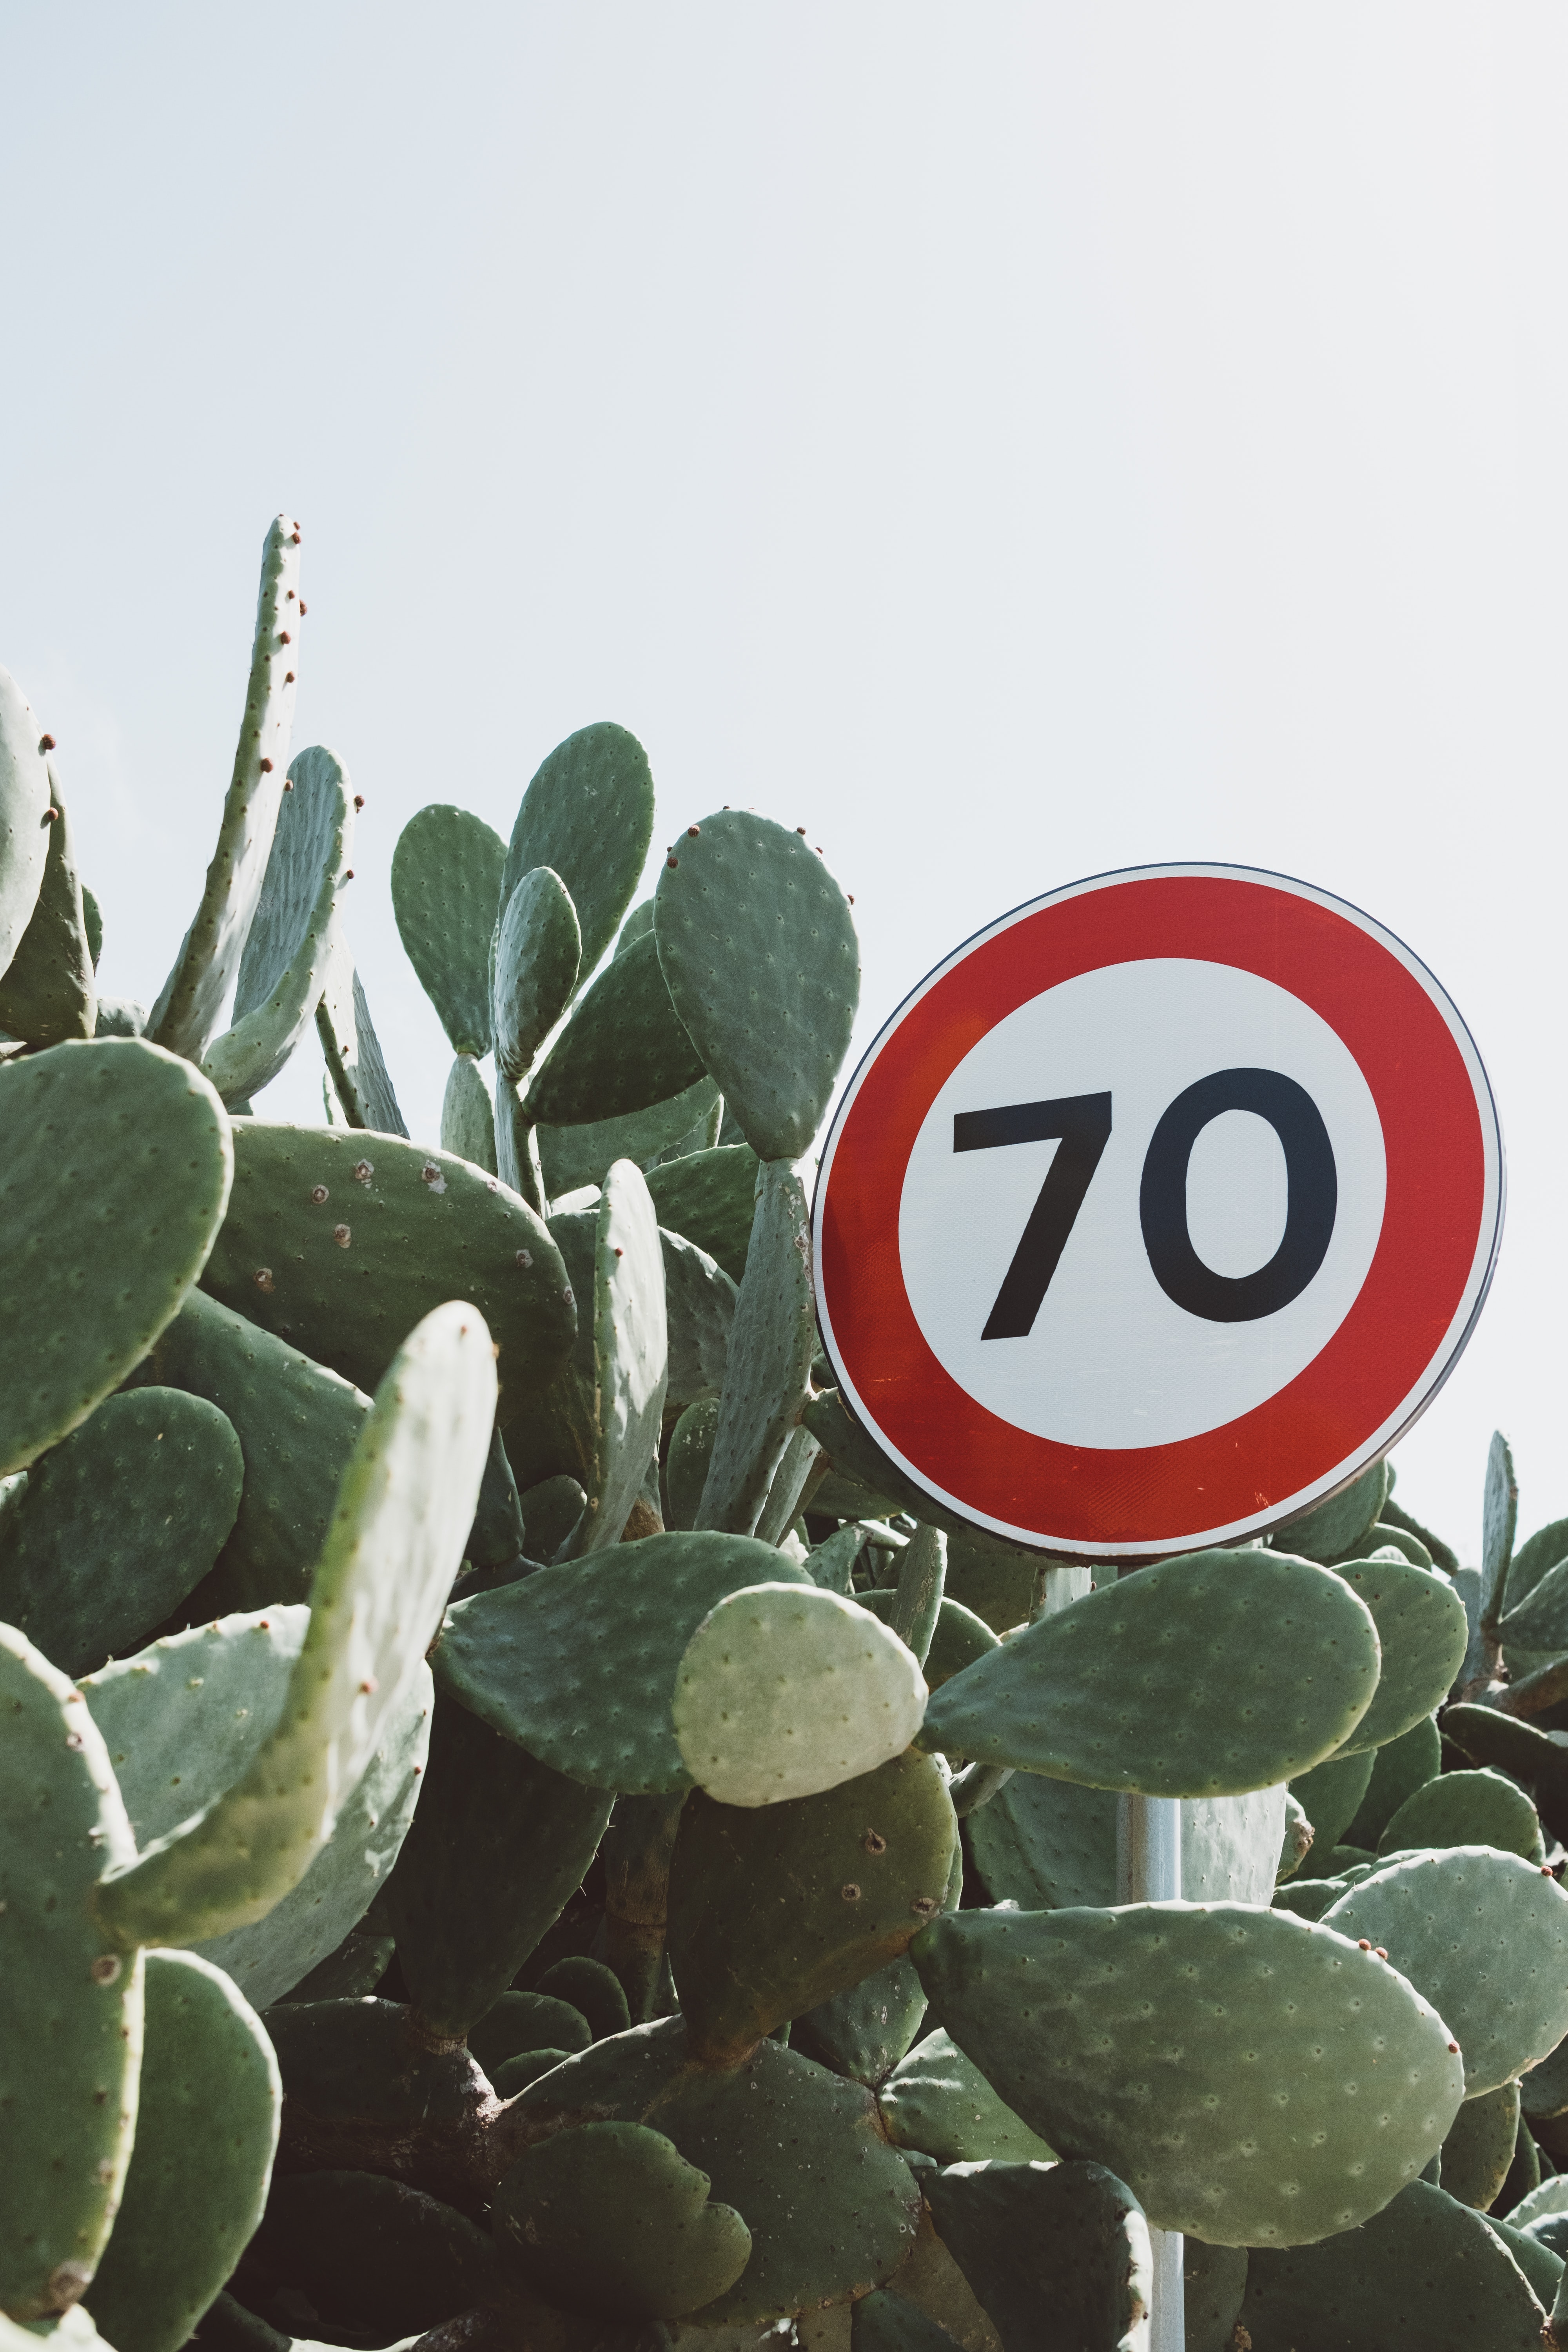 70 road sign surrounded by bunny ear cactus plant